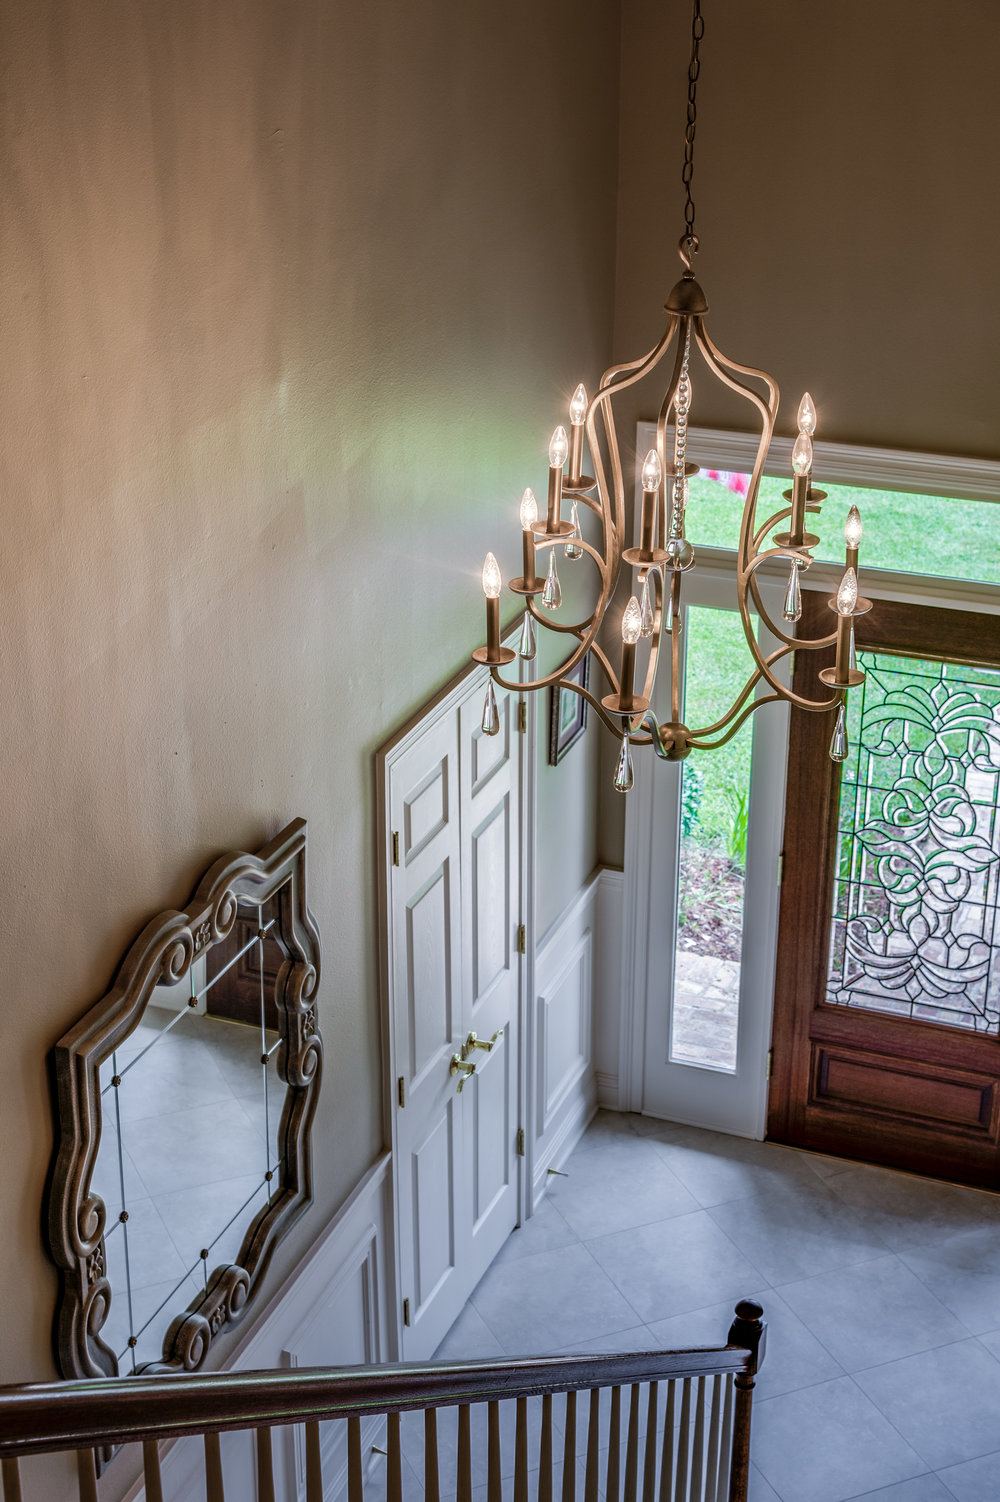 KHB Interiors details garden district interior designer old metairie interior decorator .jpg